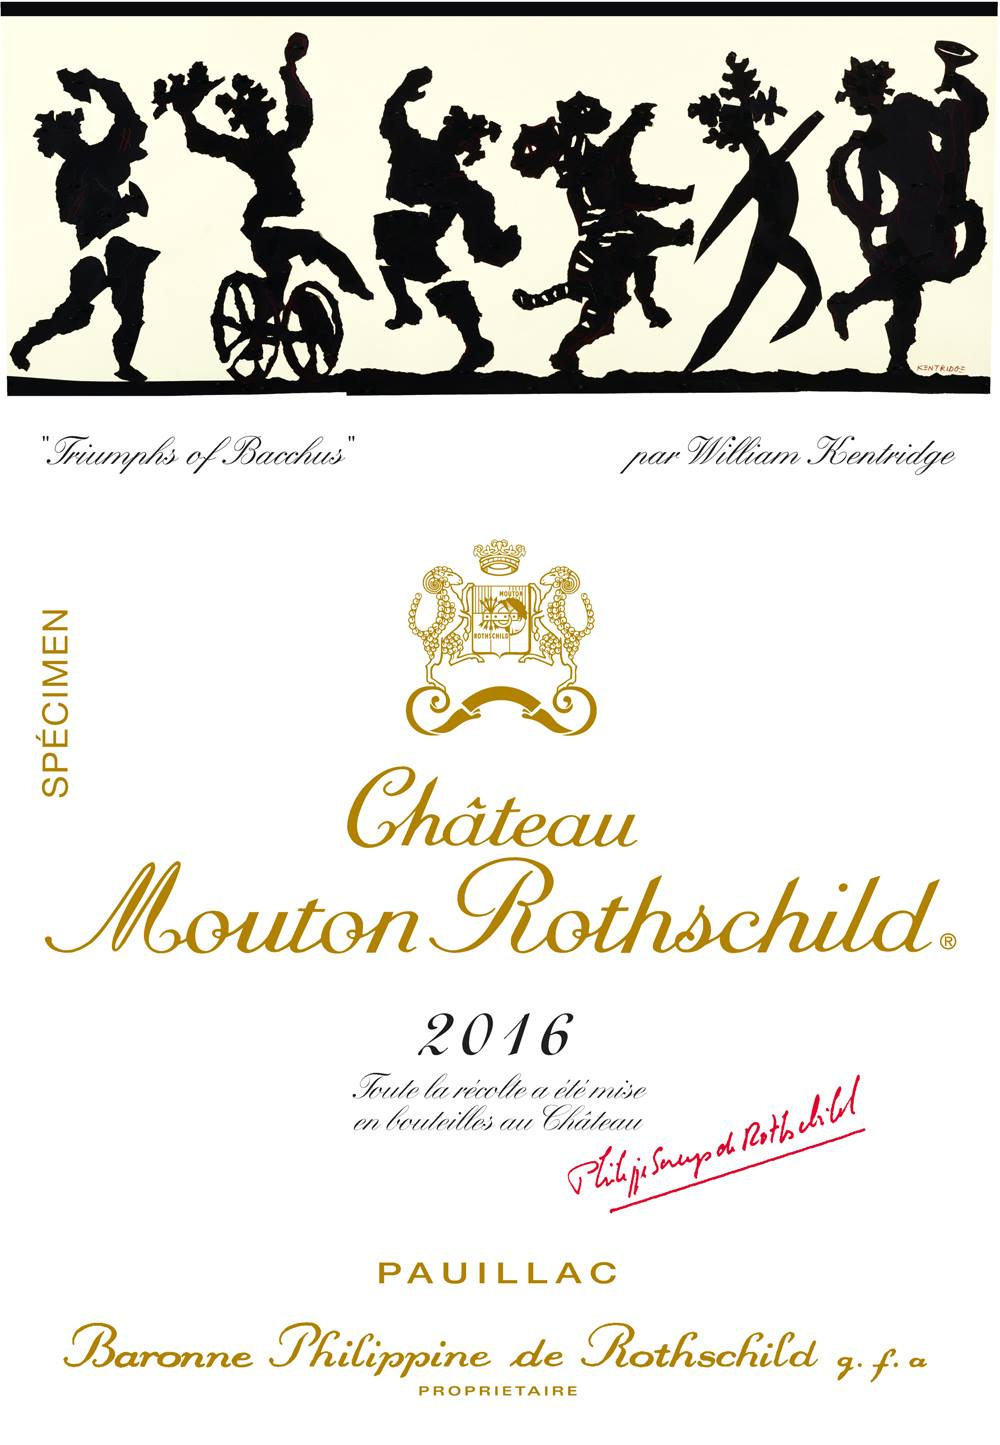 William Kentridge illustrates Mouton Rothschild 2016 label